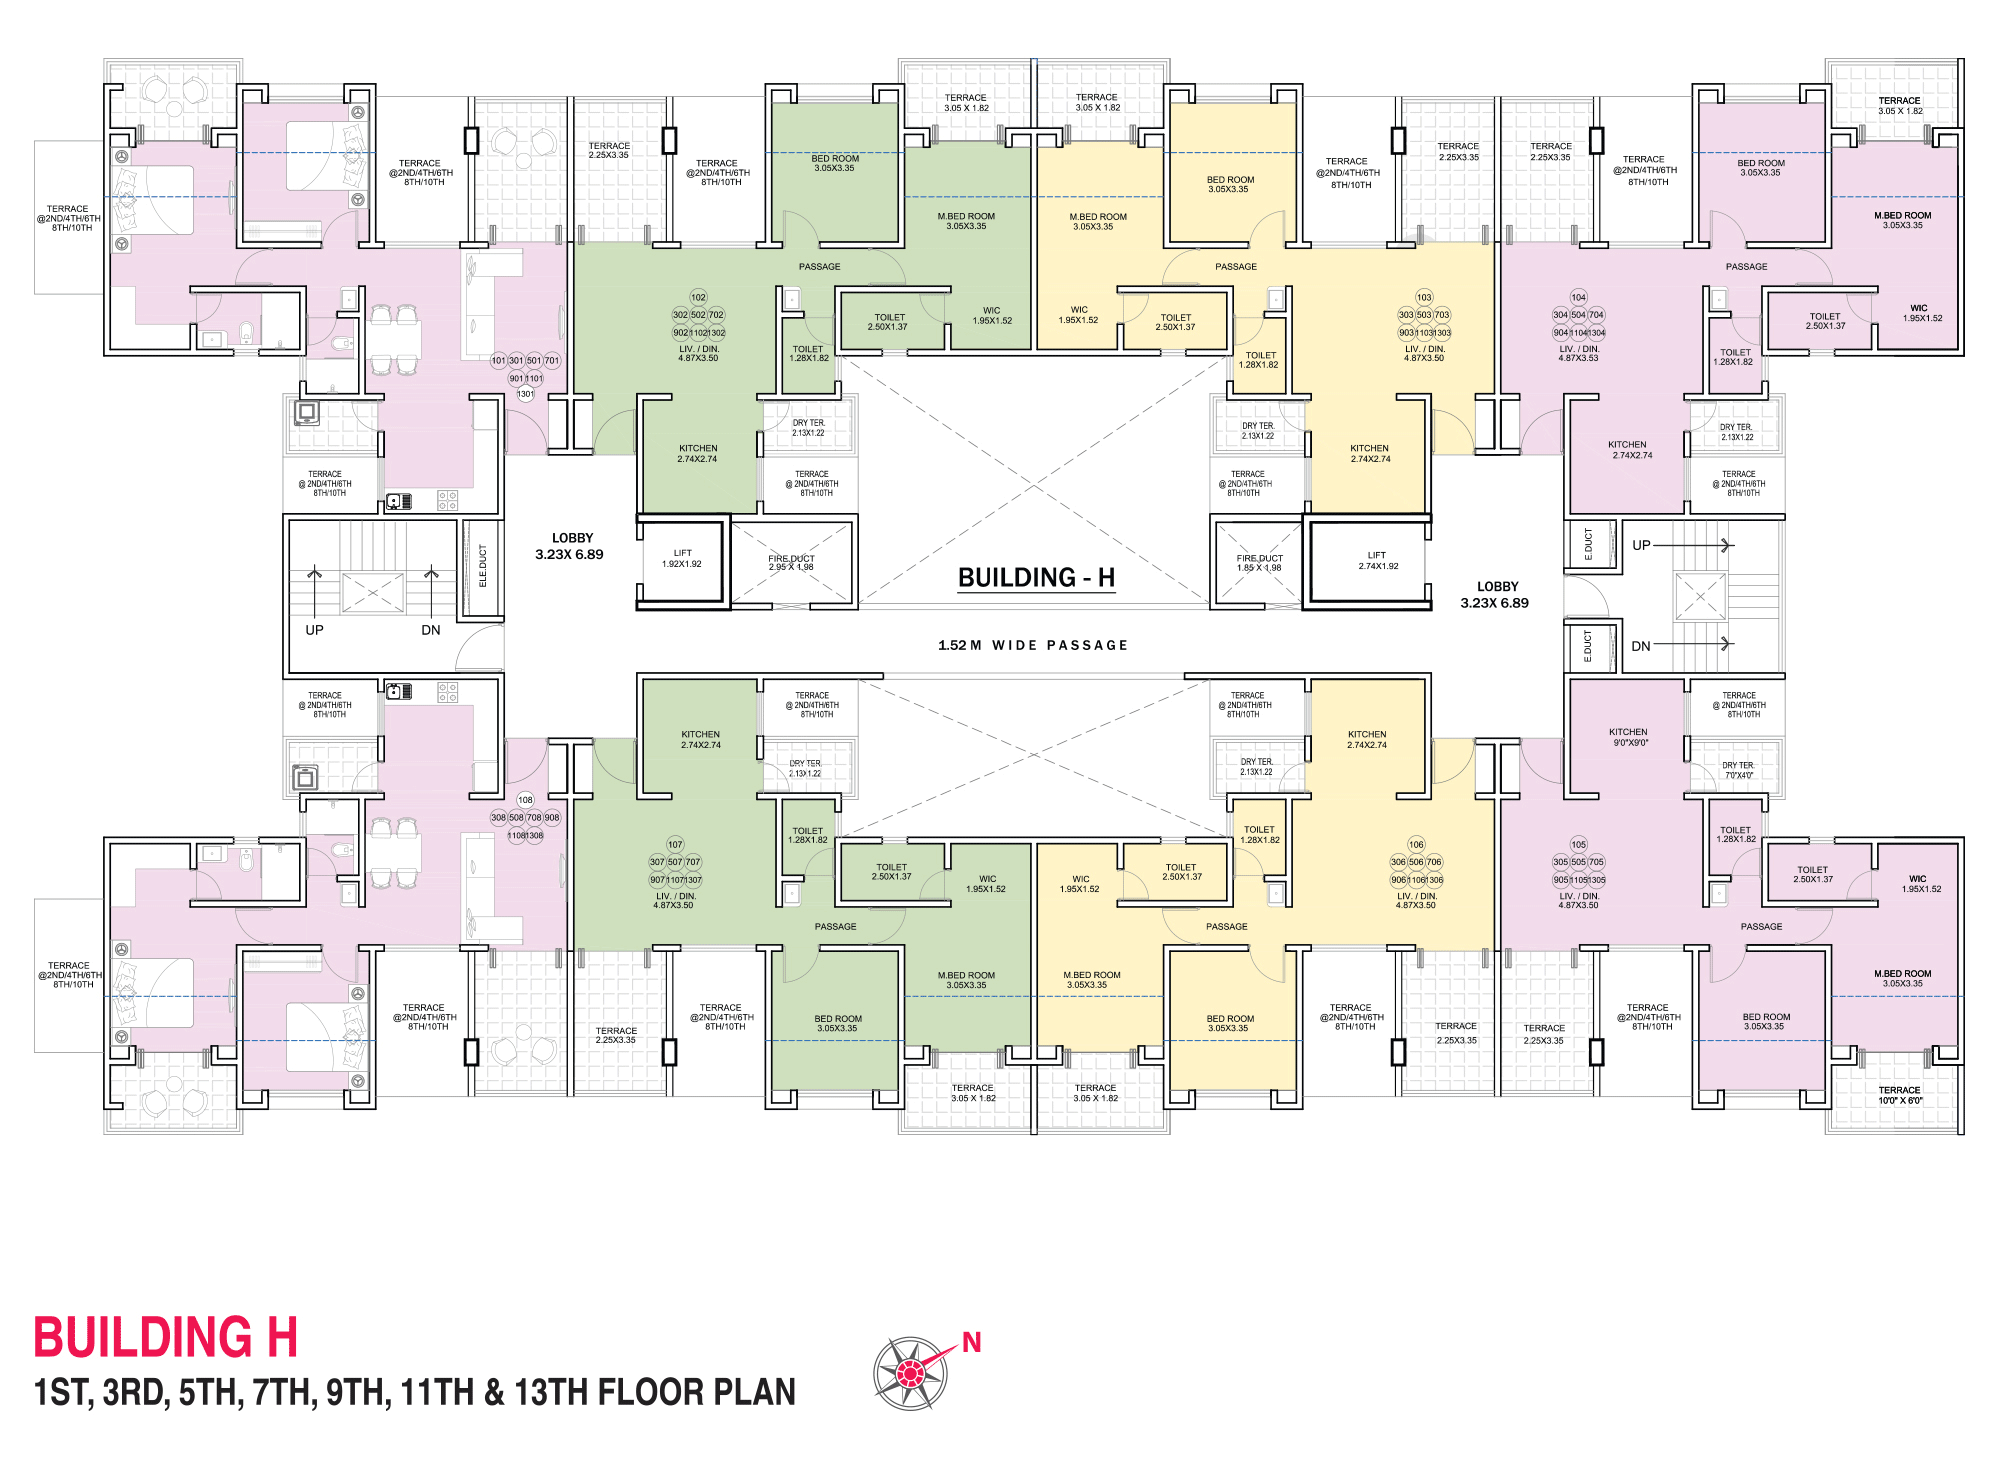 Pristine Pacific_Wing H 1,3,5,7,9,11,13 FLOOR PLAN